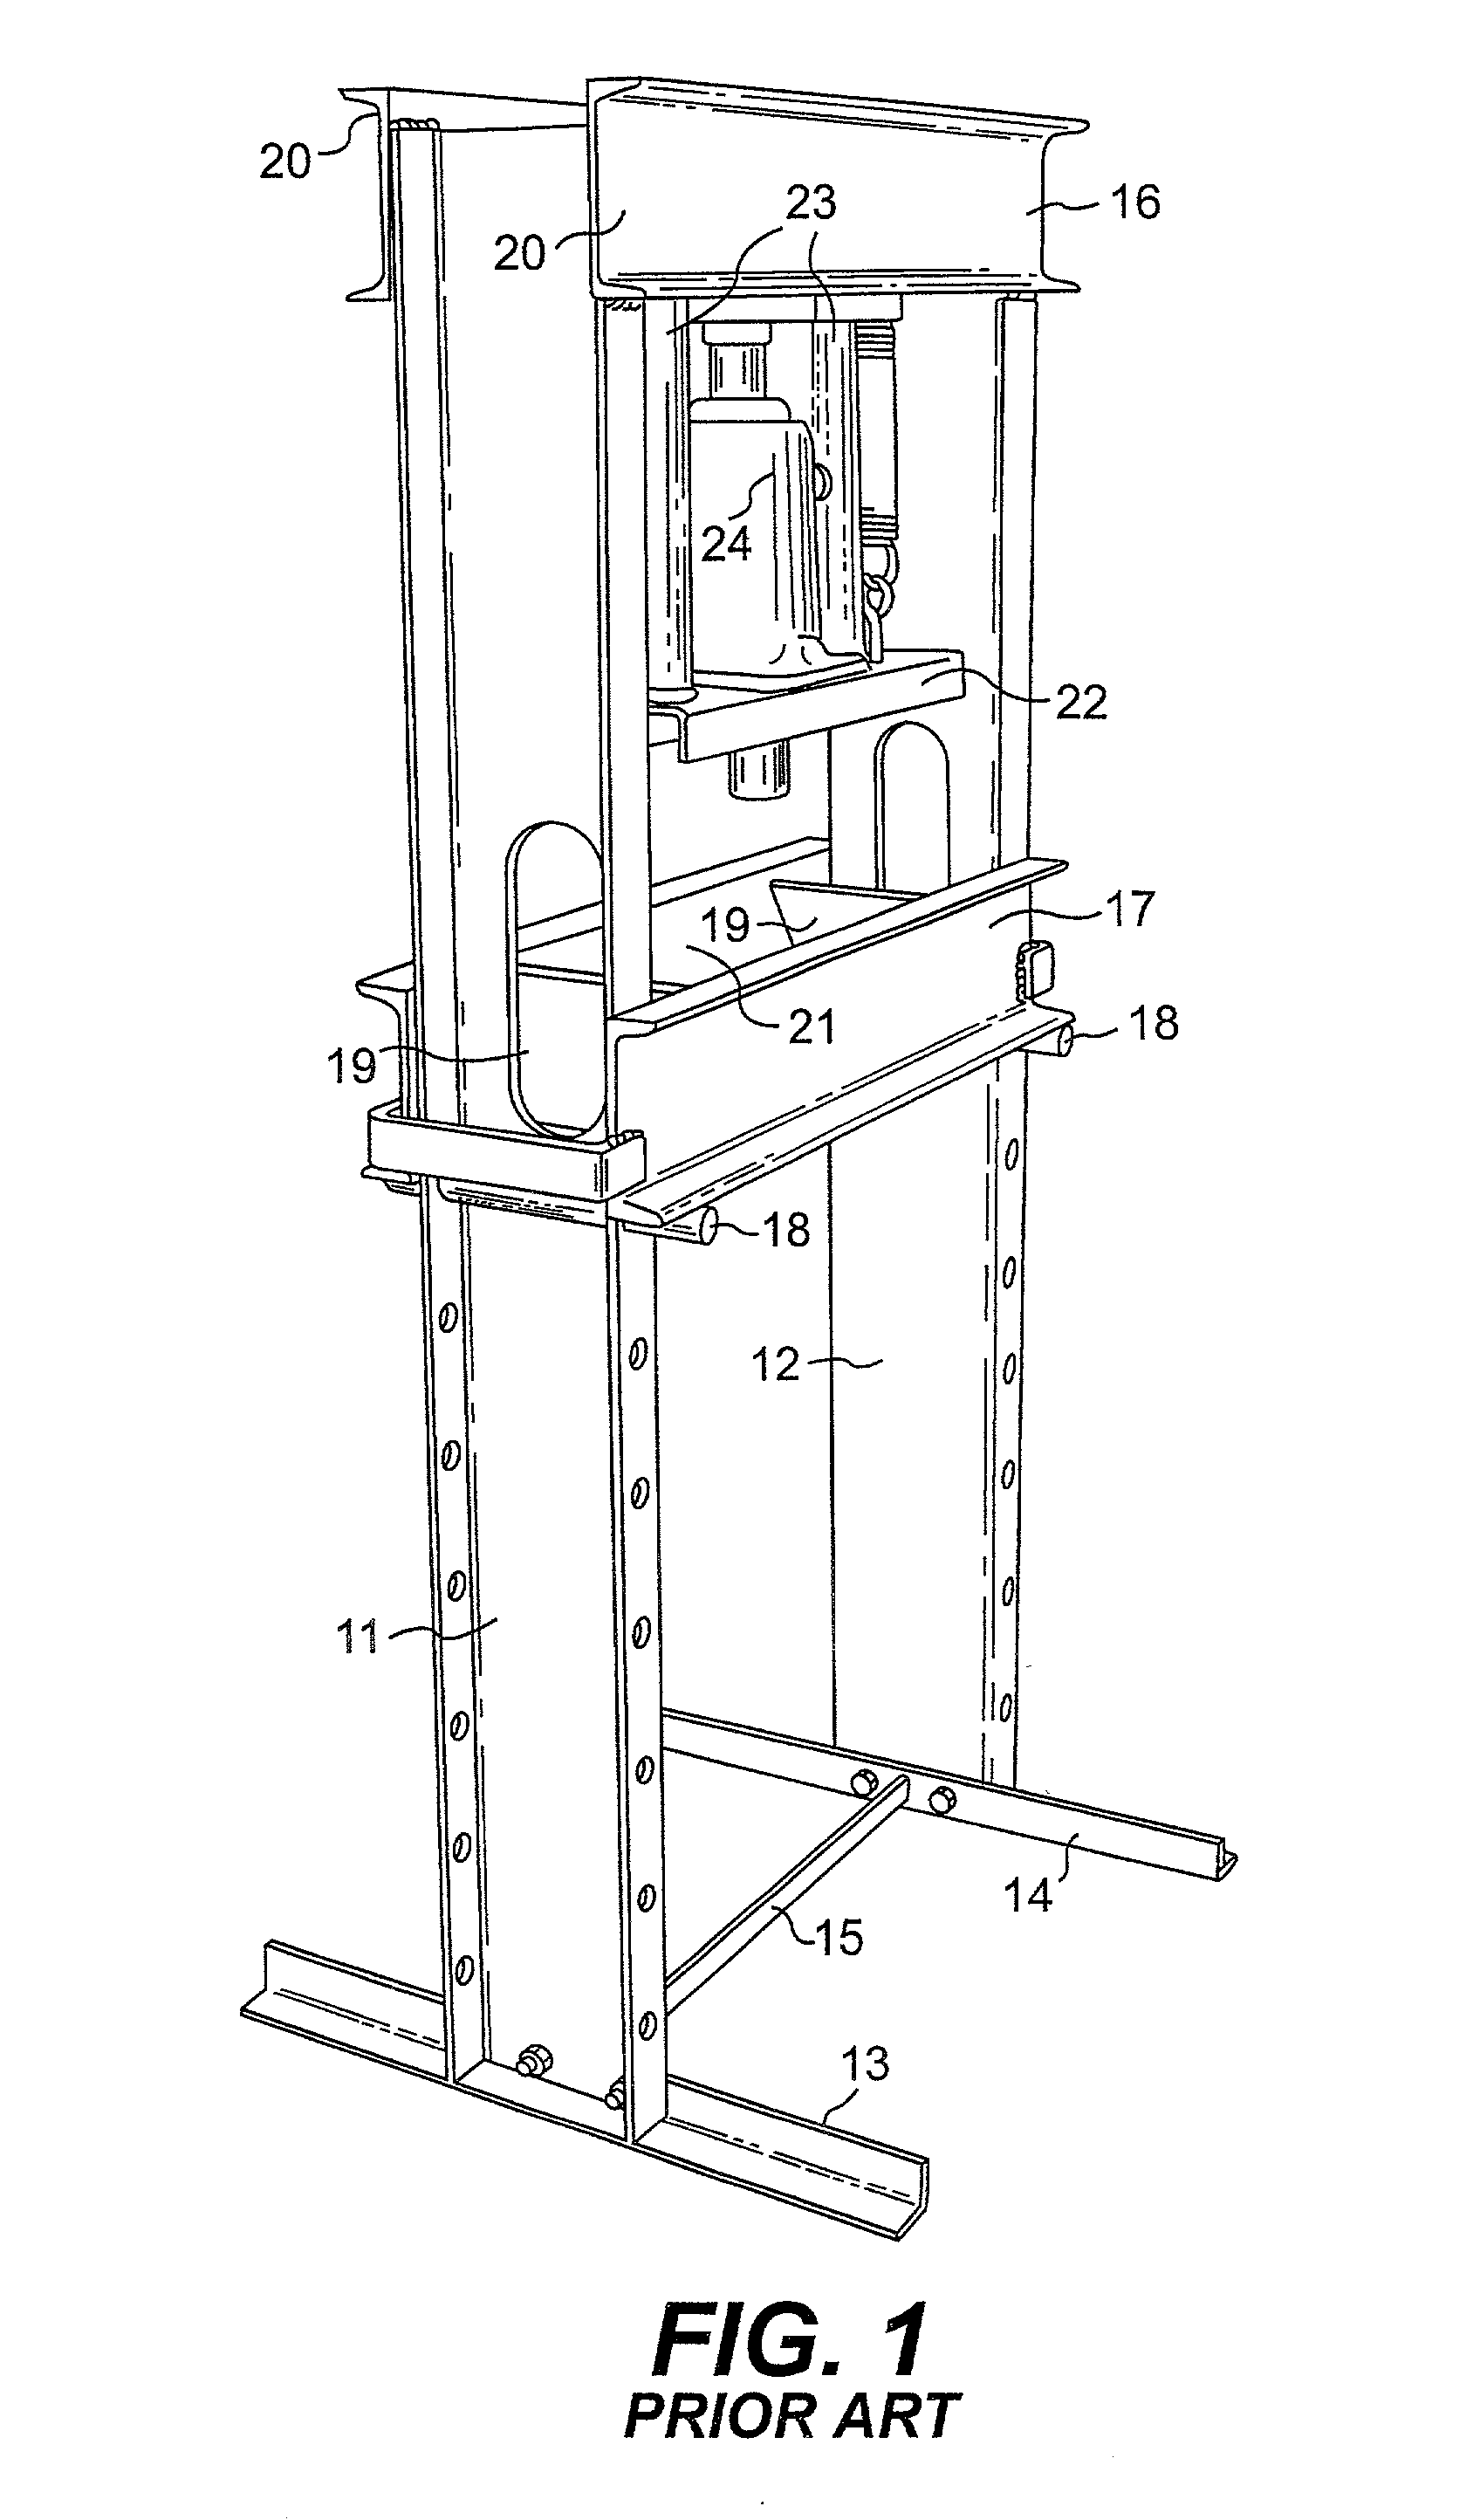 hight resolution of patente us20020046661 hydraulic press google patentes